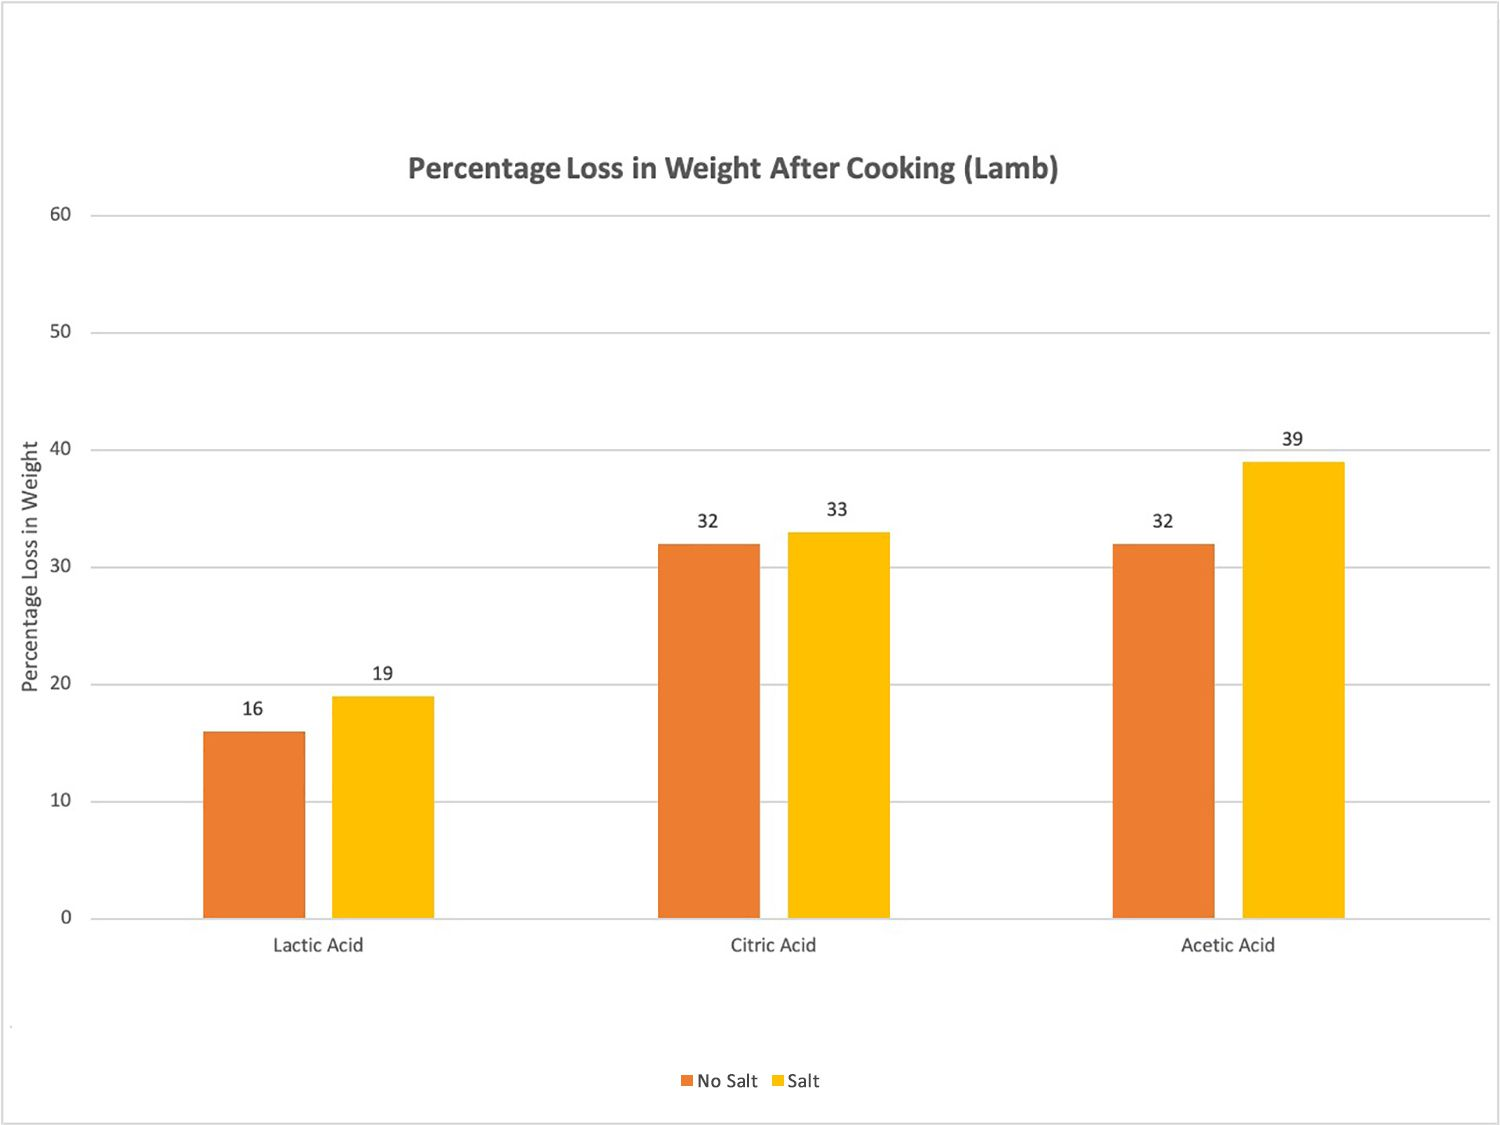 Percentage loss in weight in marinated lamb after cooking